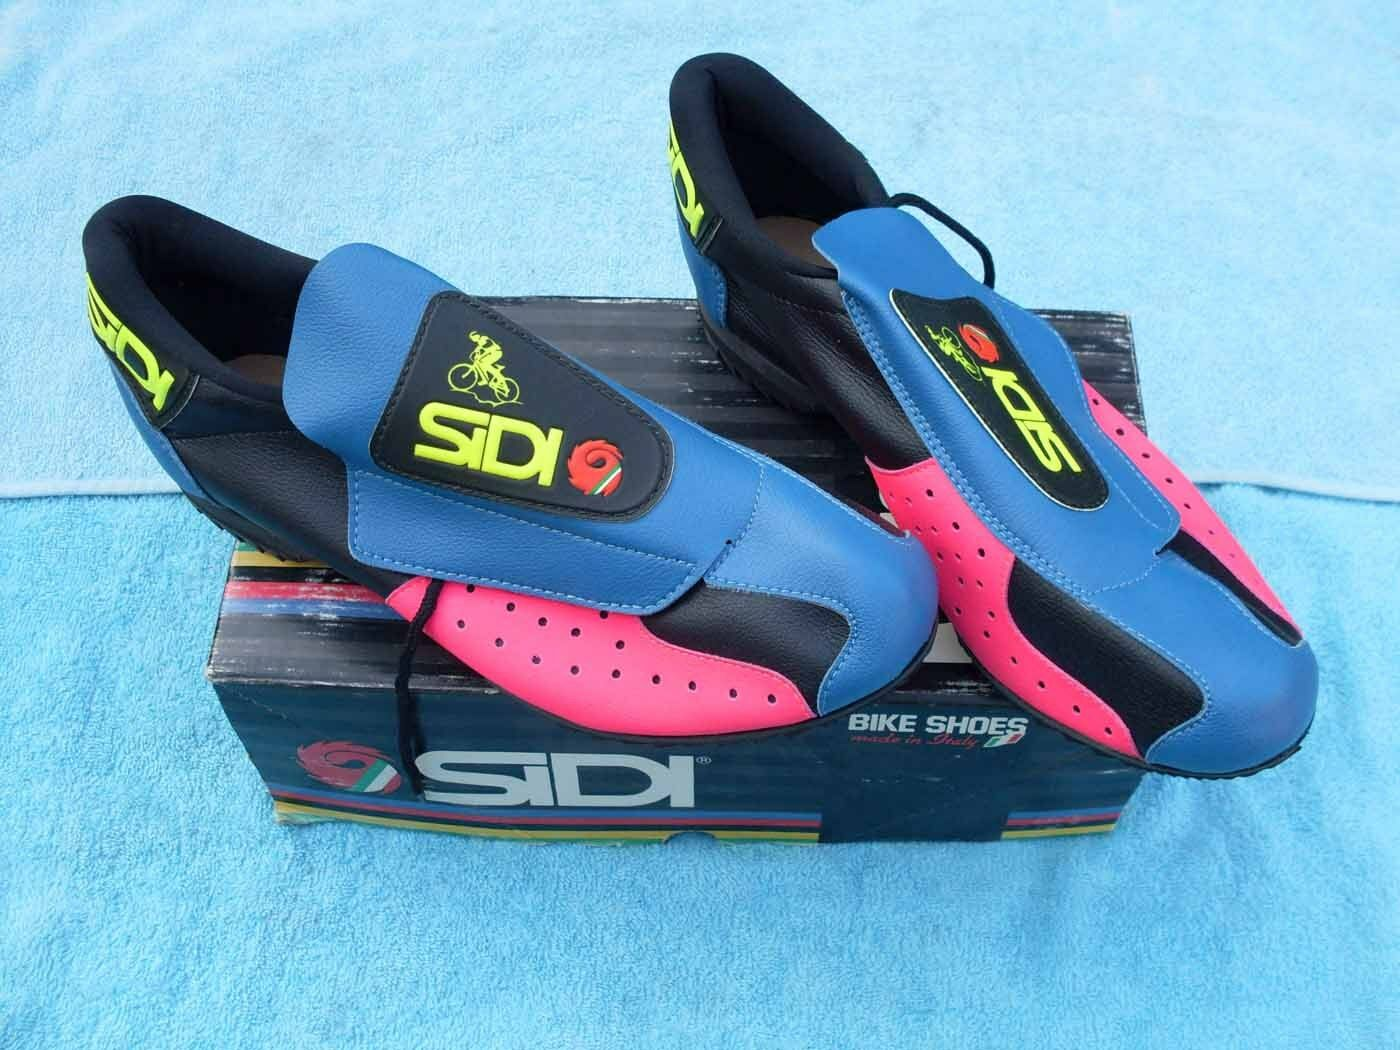 New Cycling chaussures Sidi ATB competition Taille 44 made in